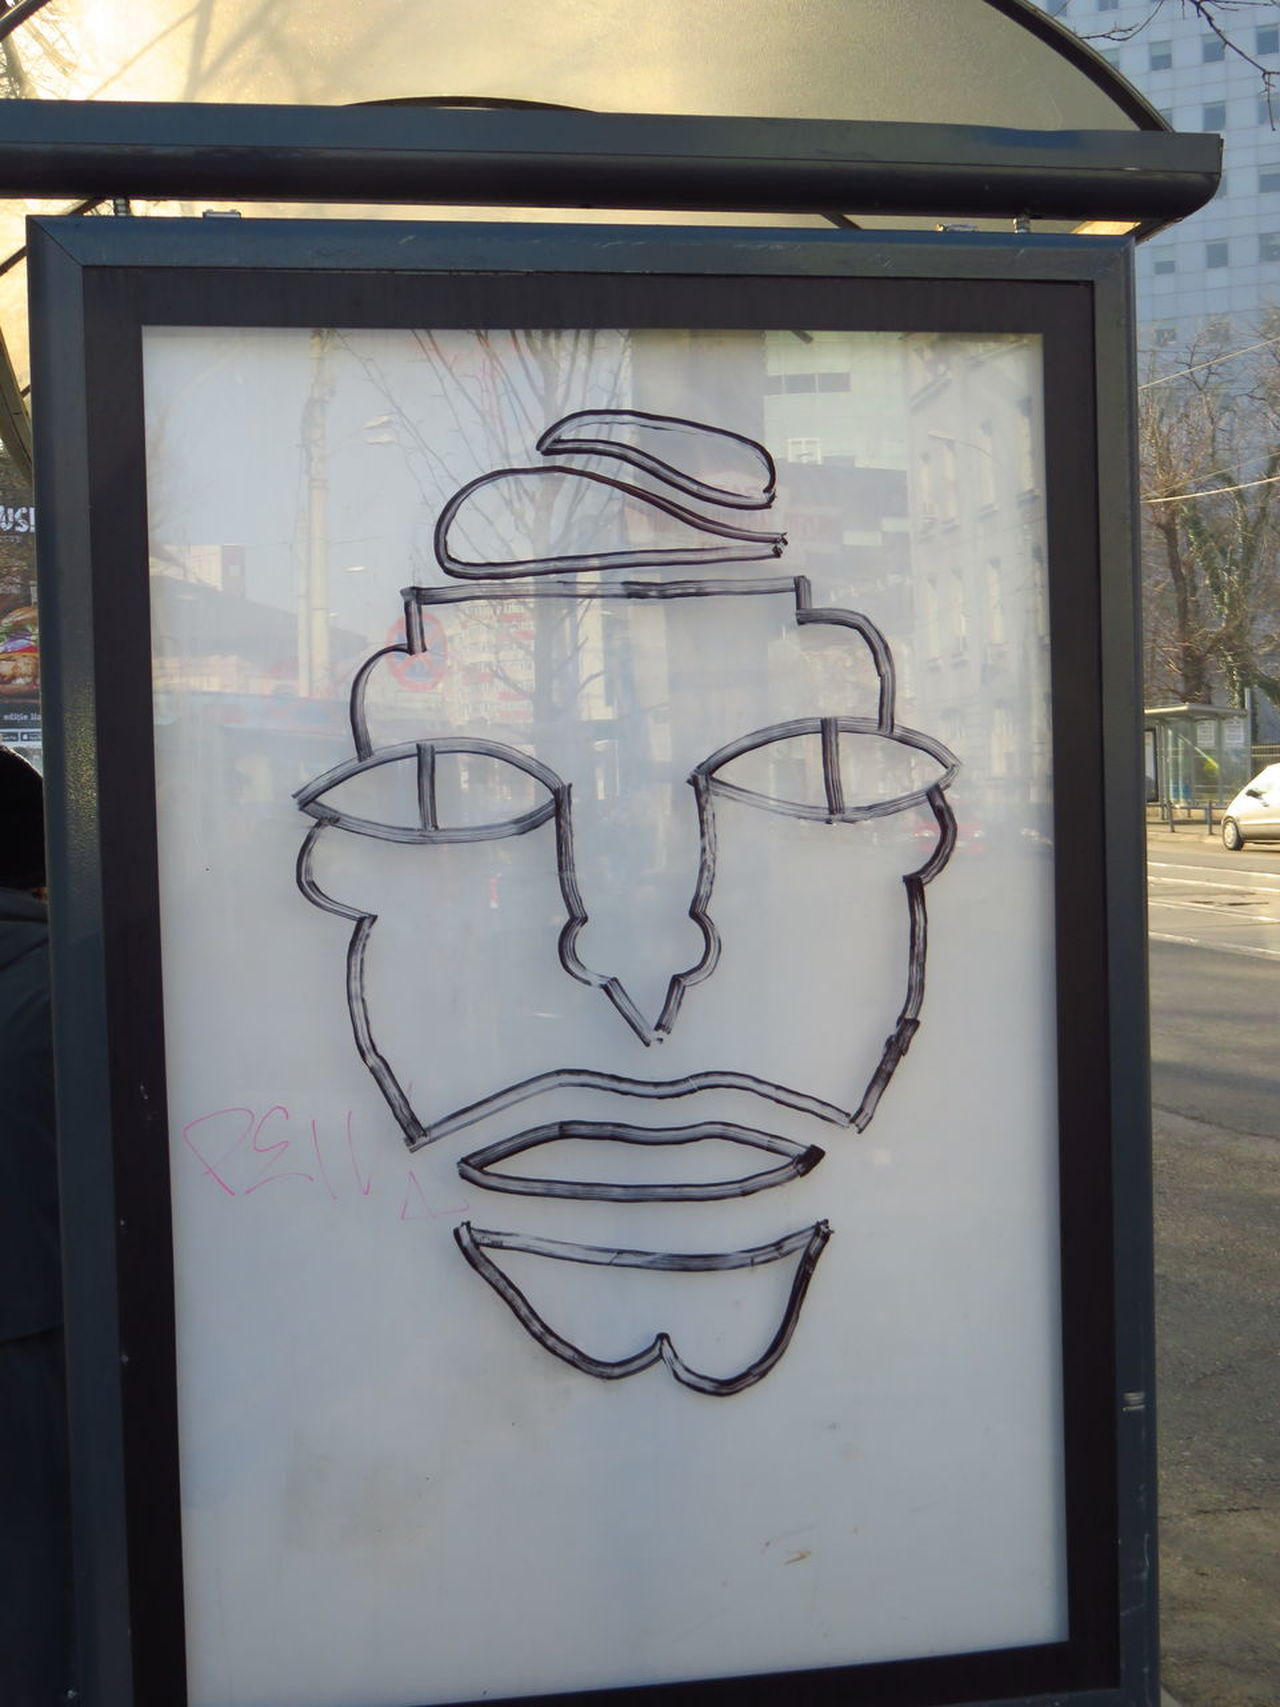 City Close-up Day Drawing Full Frame Graffiti Human Face No People Reflection Schetch